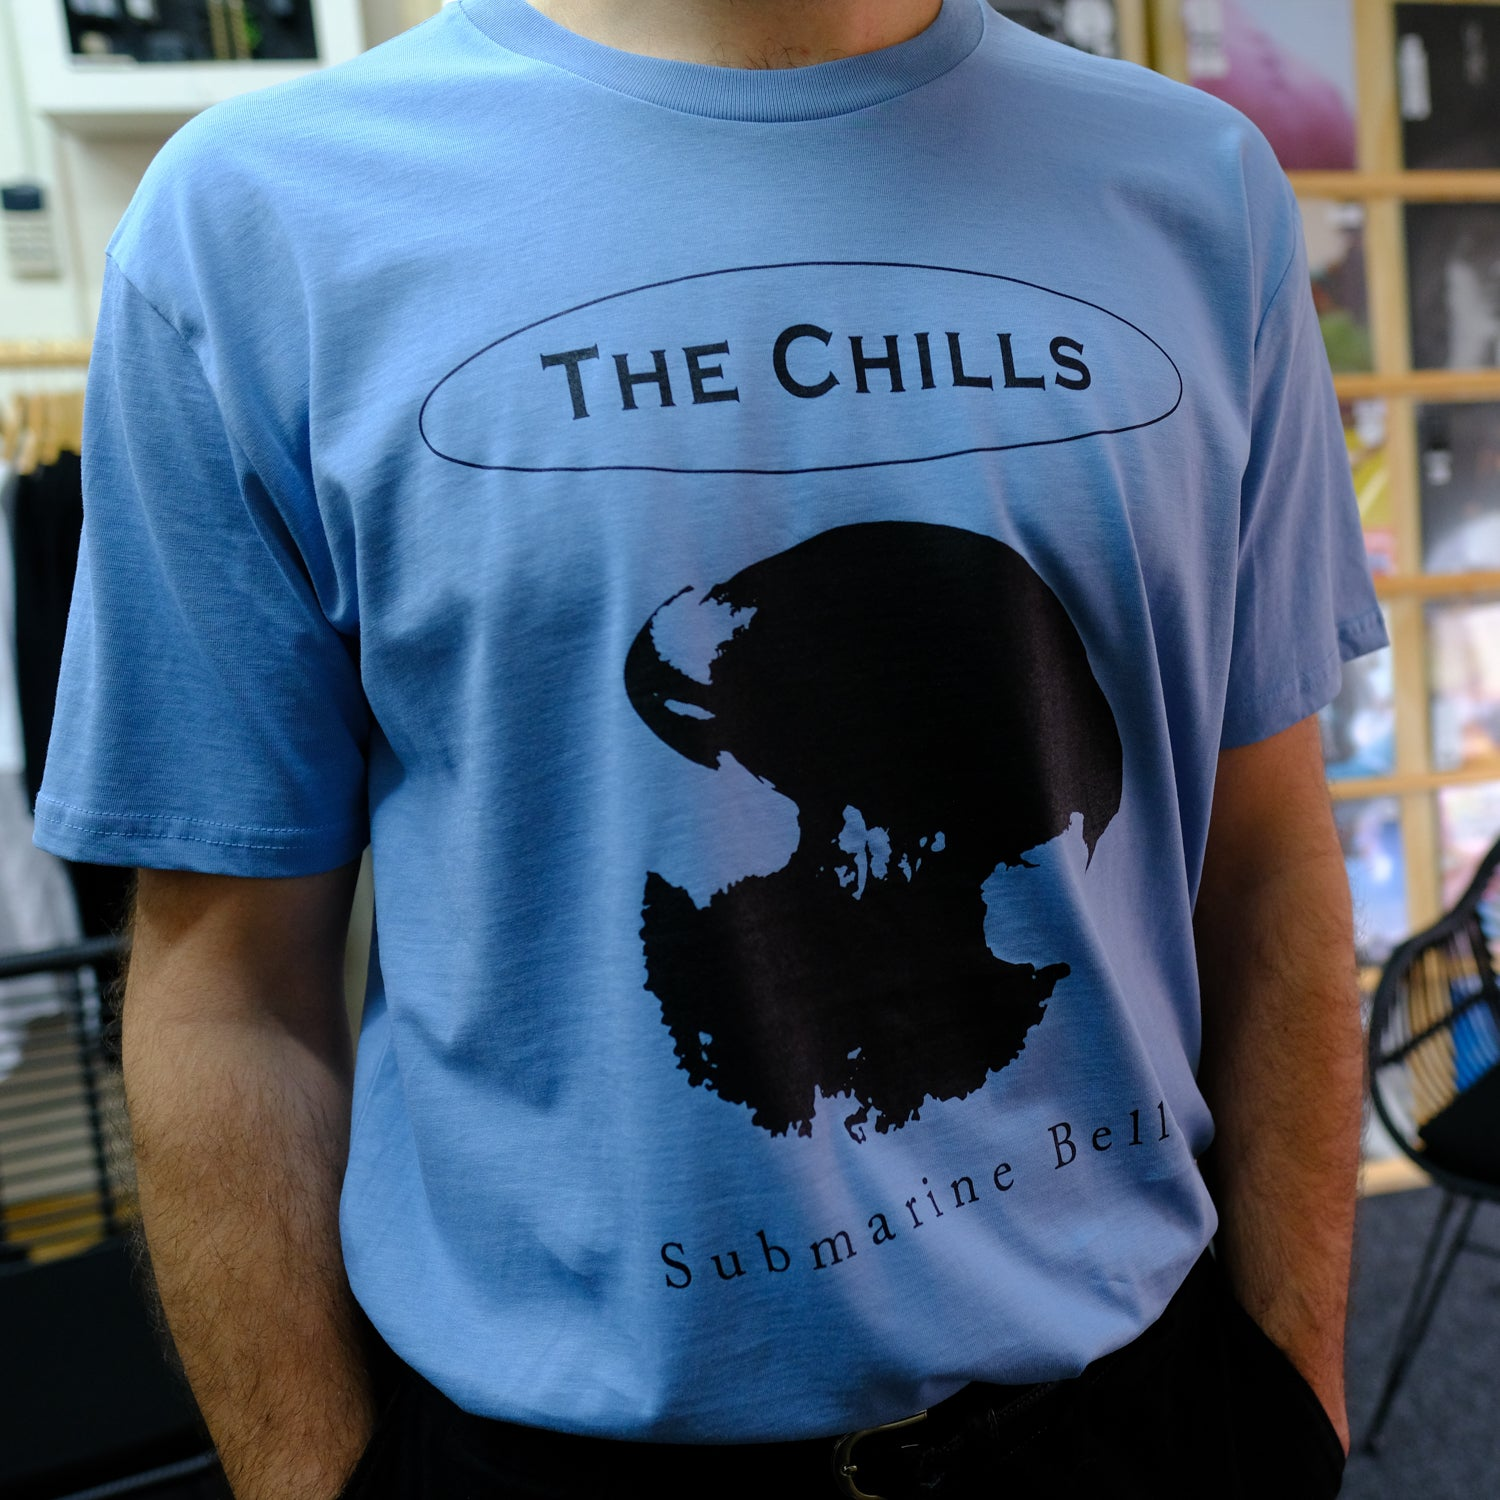 The Chills - Submarine Bells T Shirt (Carolina Blue)